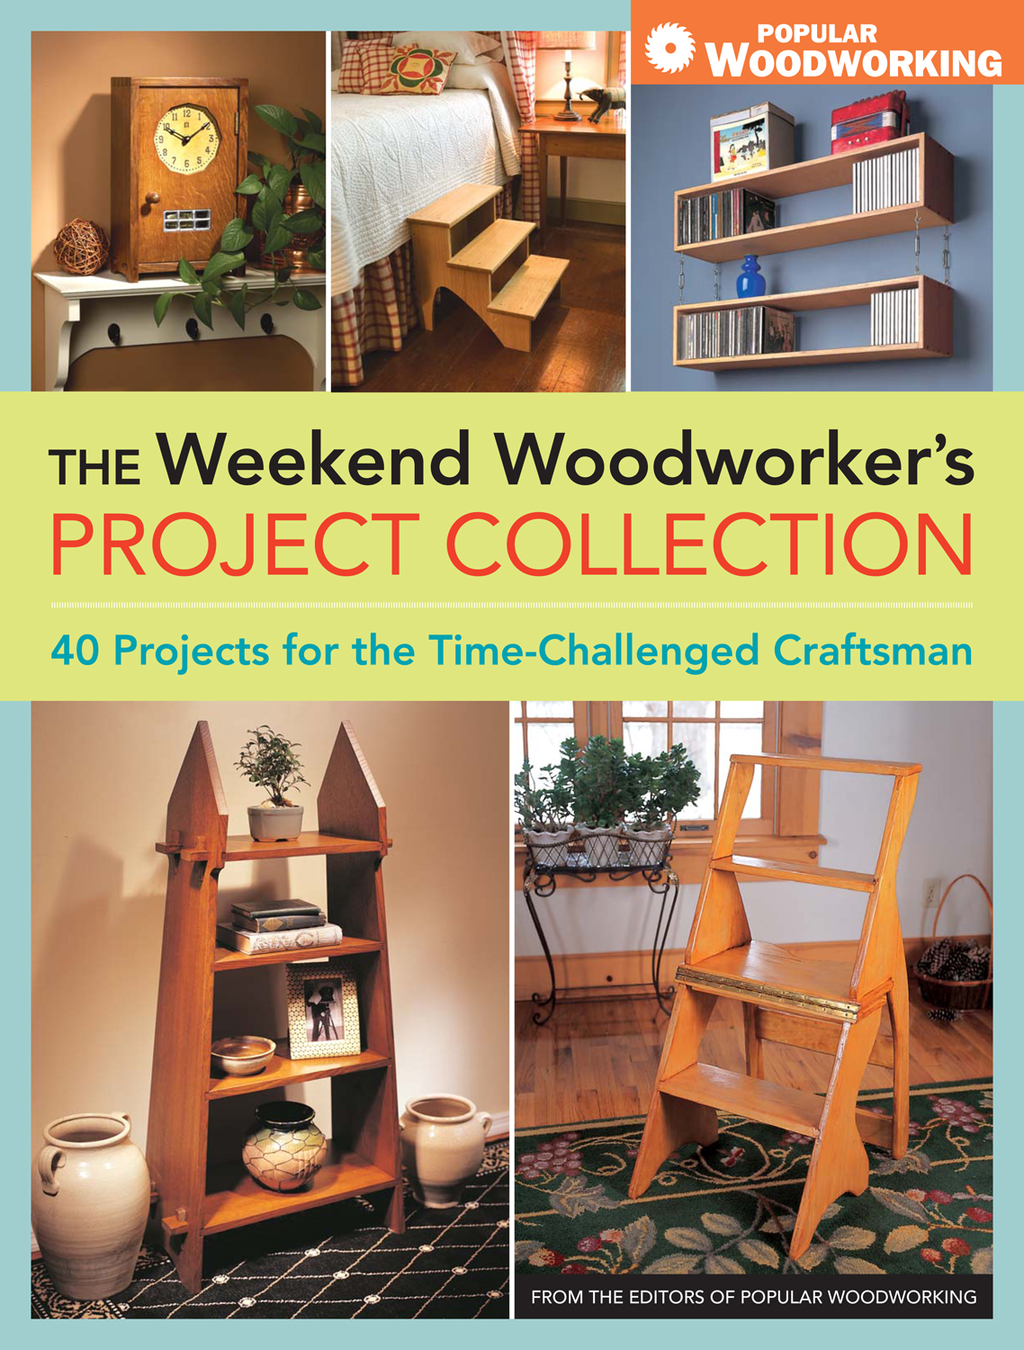 The Weekend Woodworker's Project Collection 40 Projects for the Time-Challenged Craftsman